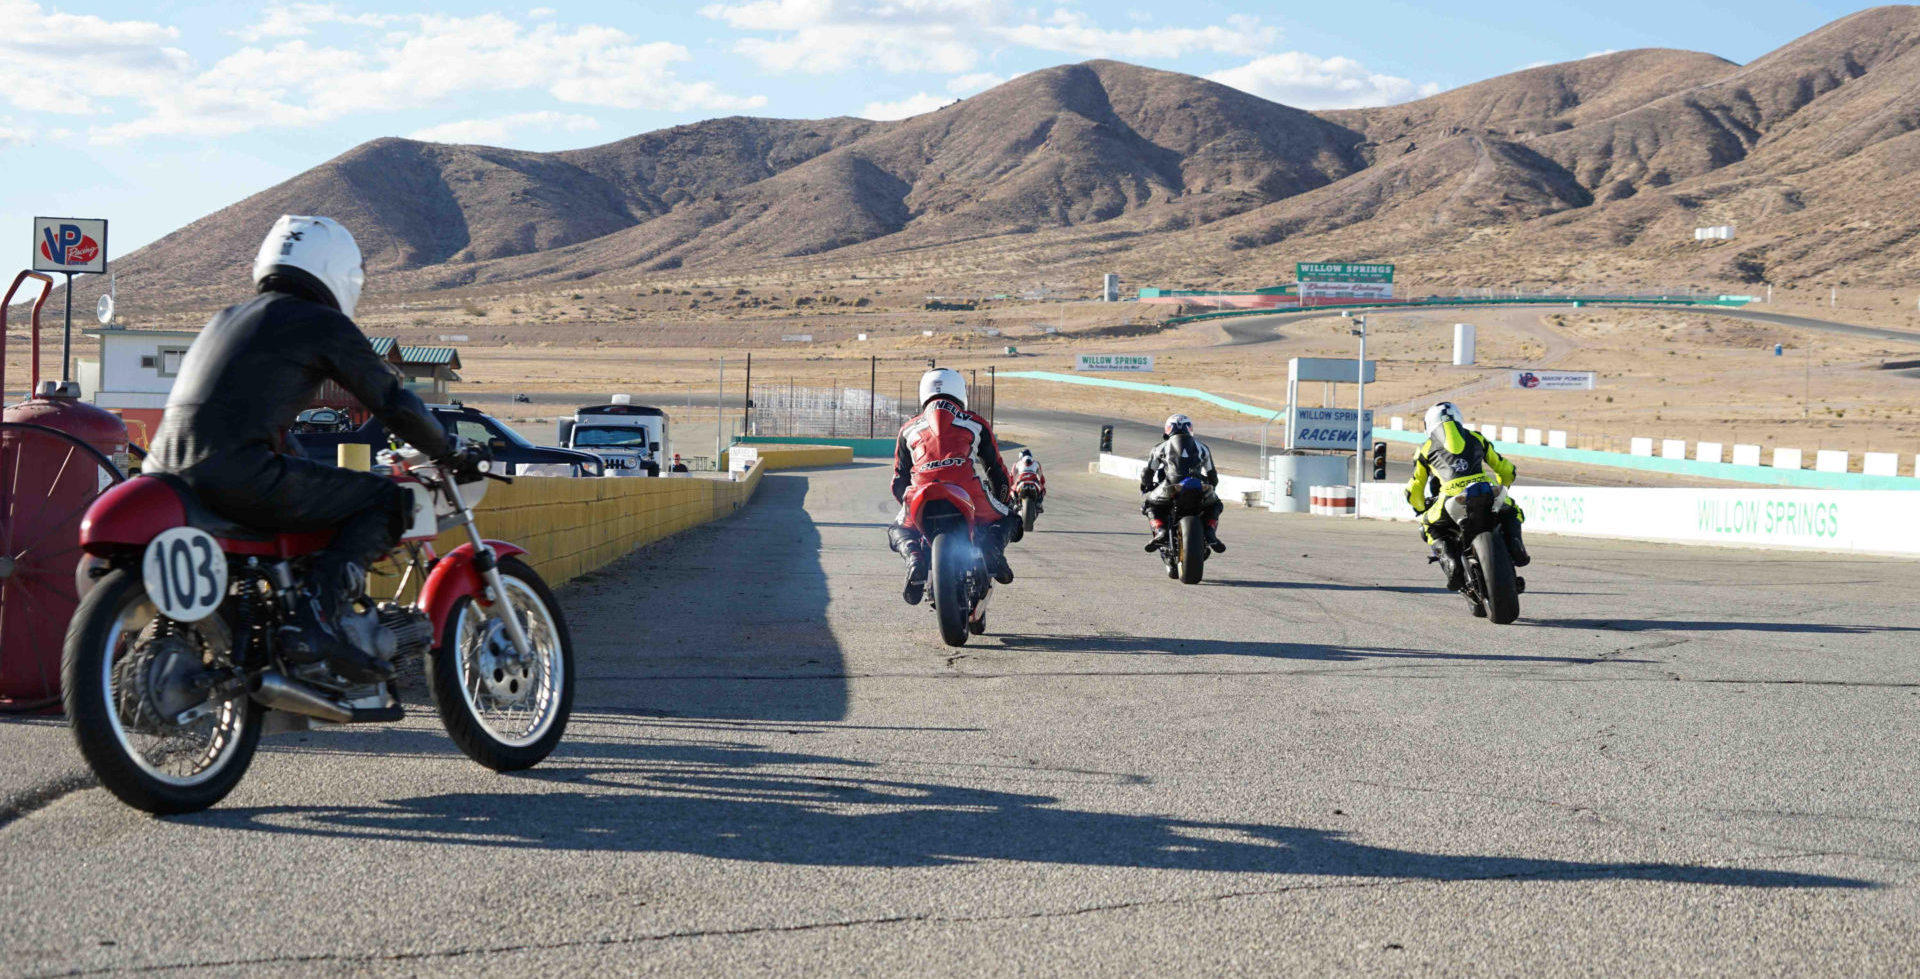 A scene from a Classic Track Day at Willow Springs International Raceway. Photo courtesy of Classic Track Day.